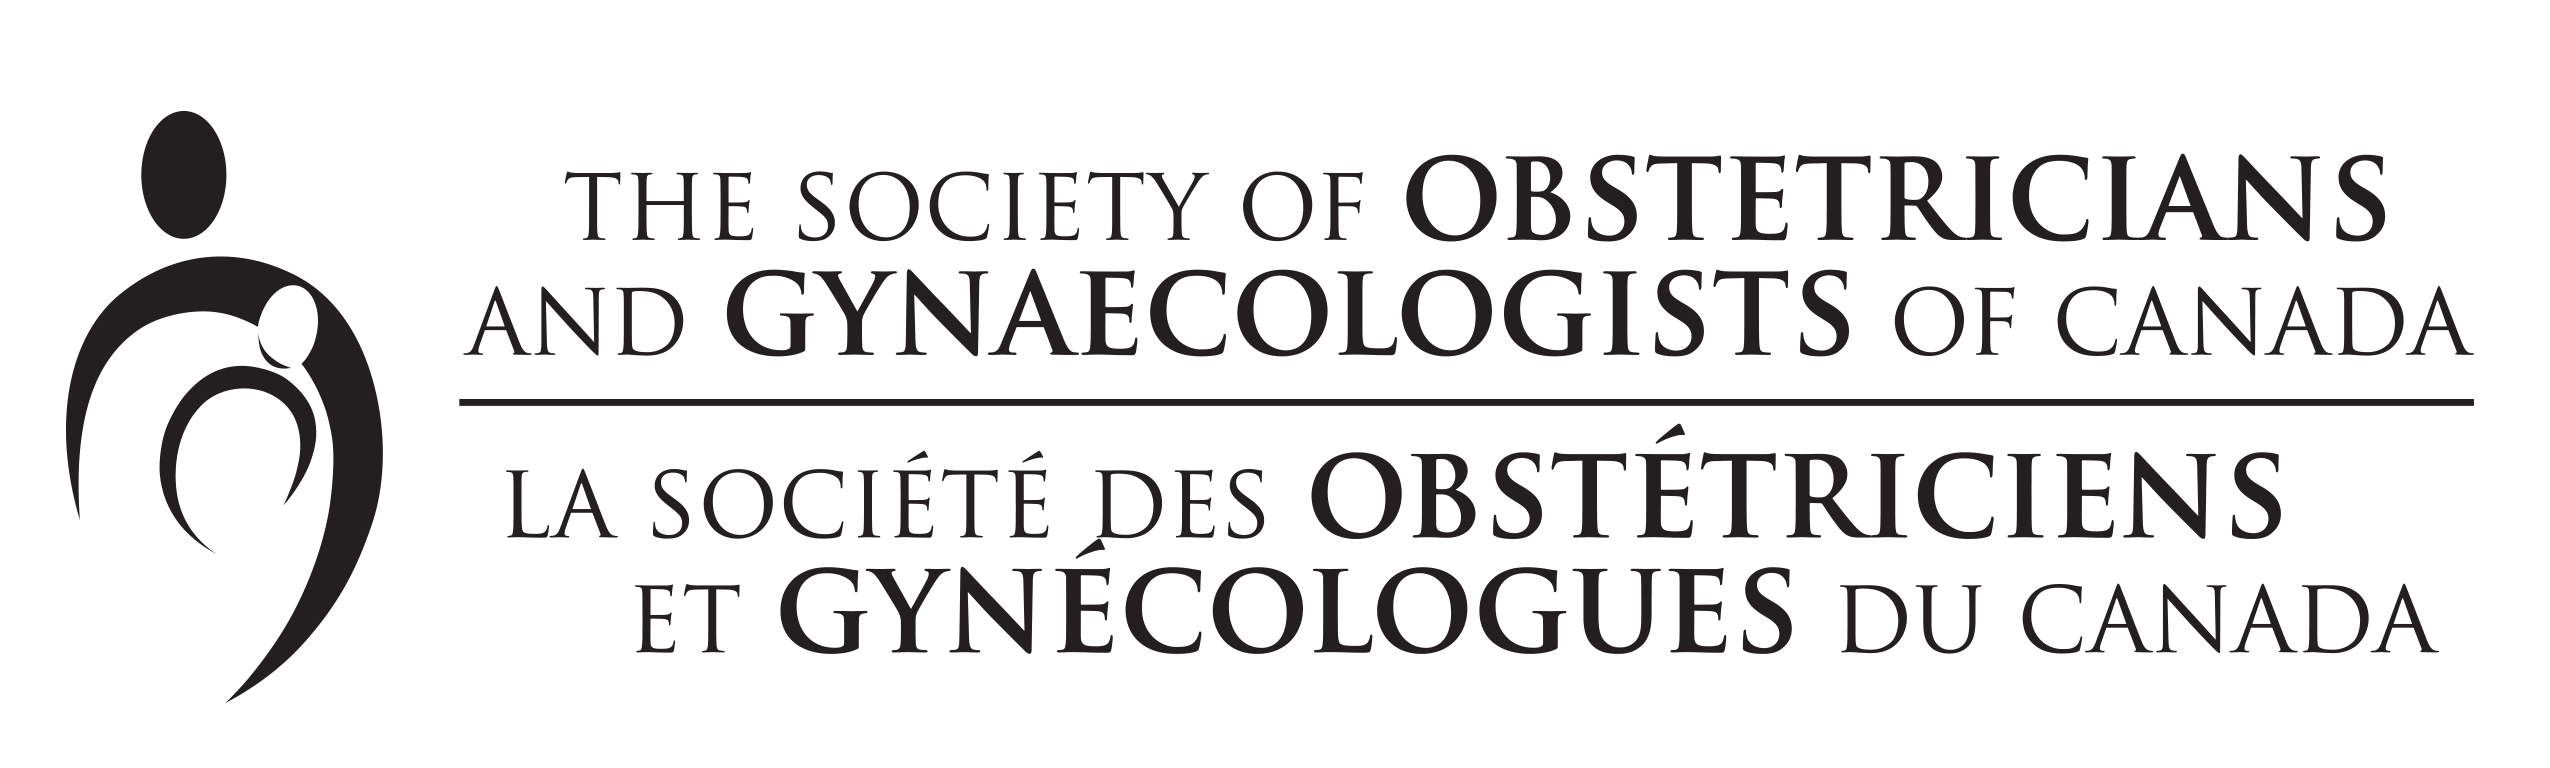 The Society of Obstetricians and Gynaecologists of Canada (SOGC) - Logo